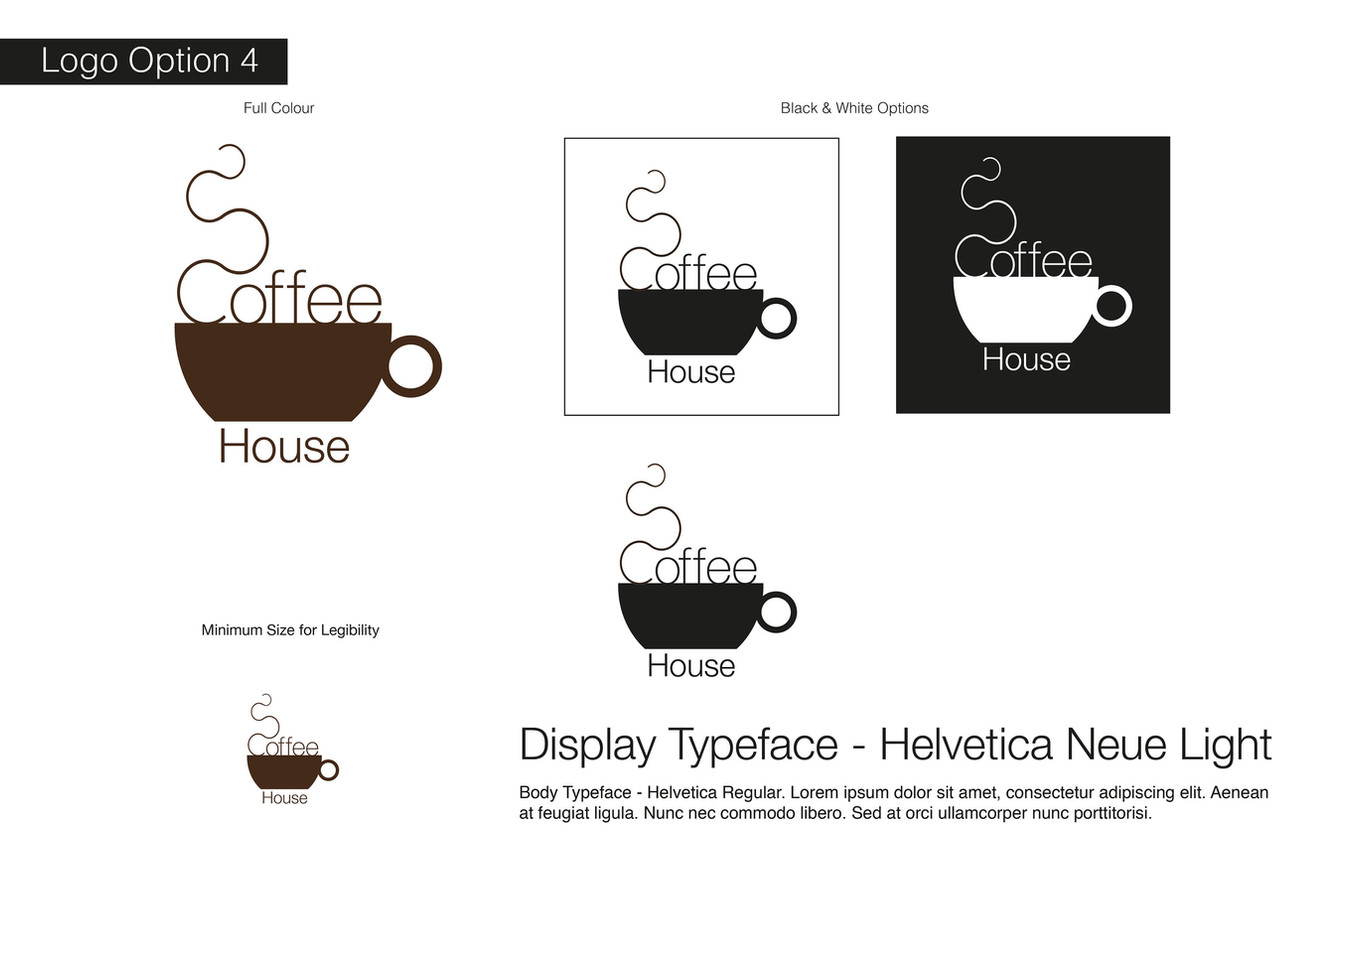 Coffee House Visual Identity - Development 4